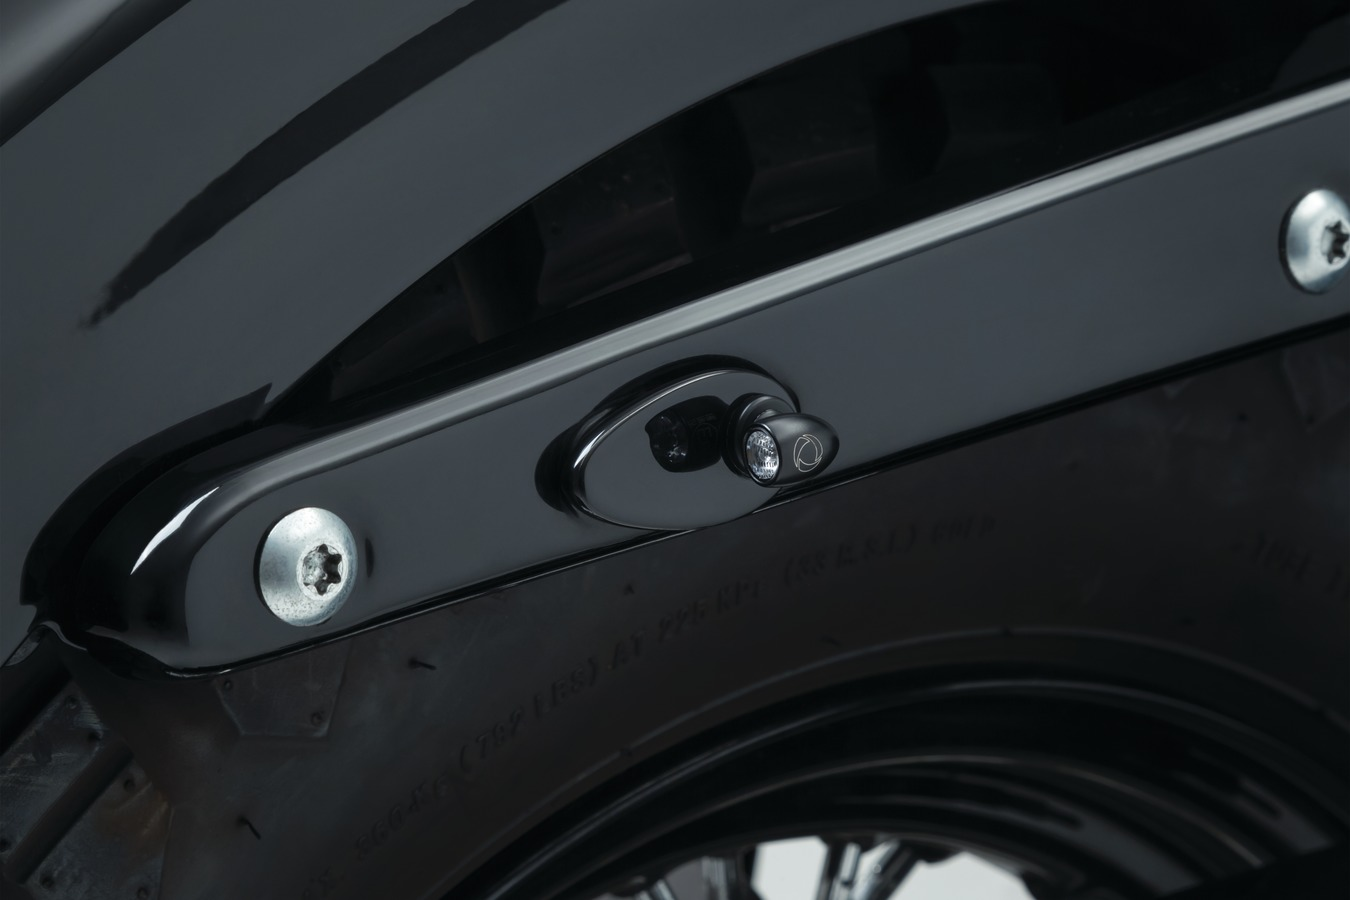 Fender Strut Cover Plates for Kuryakyn by Kellermann, Gloss Black